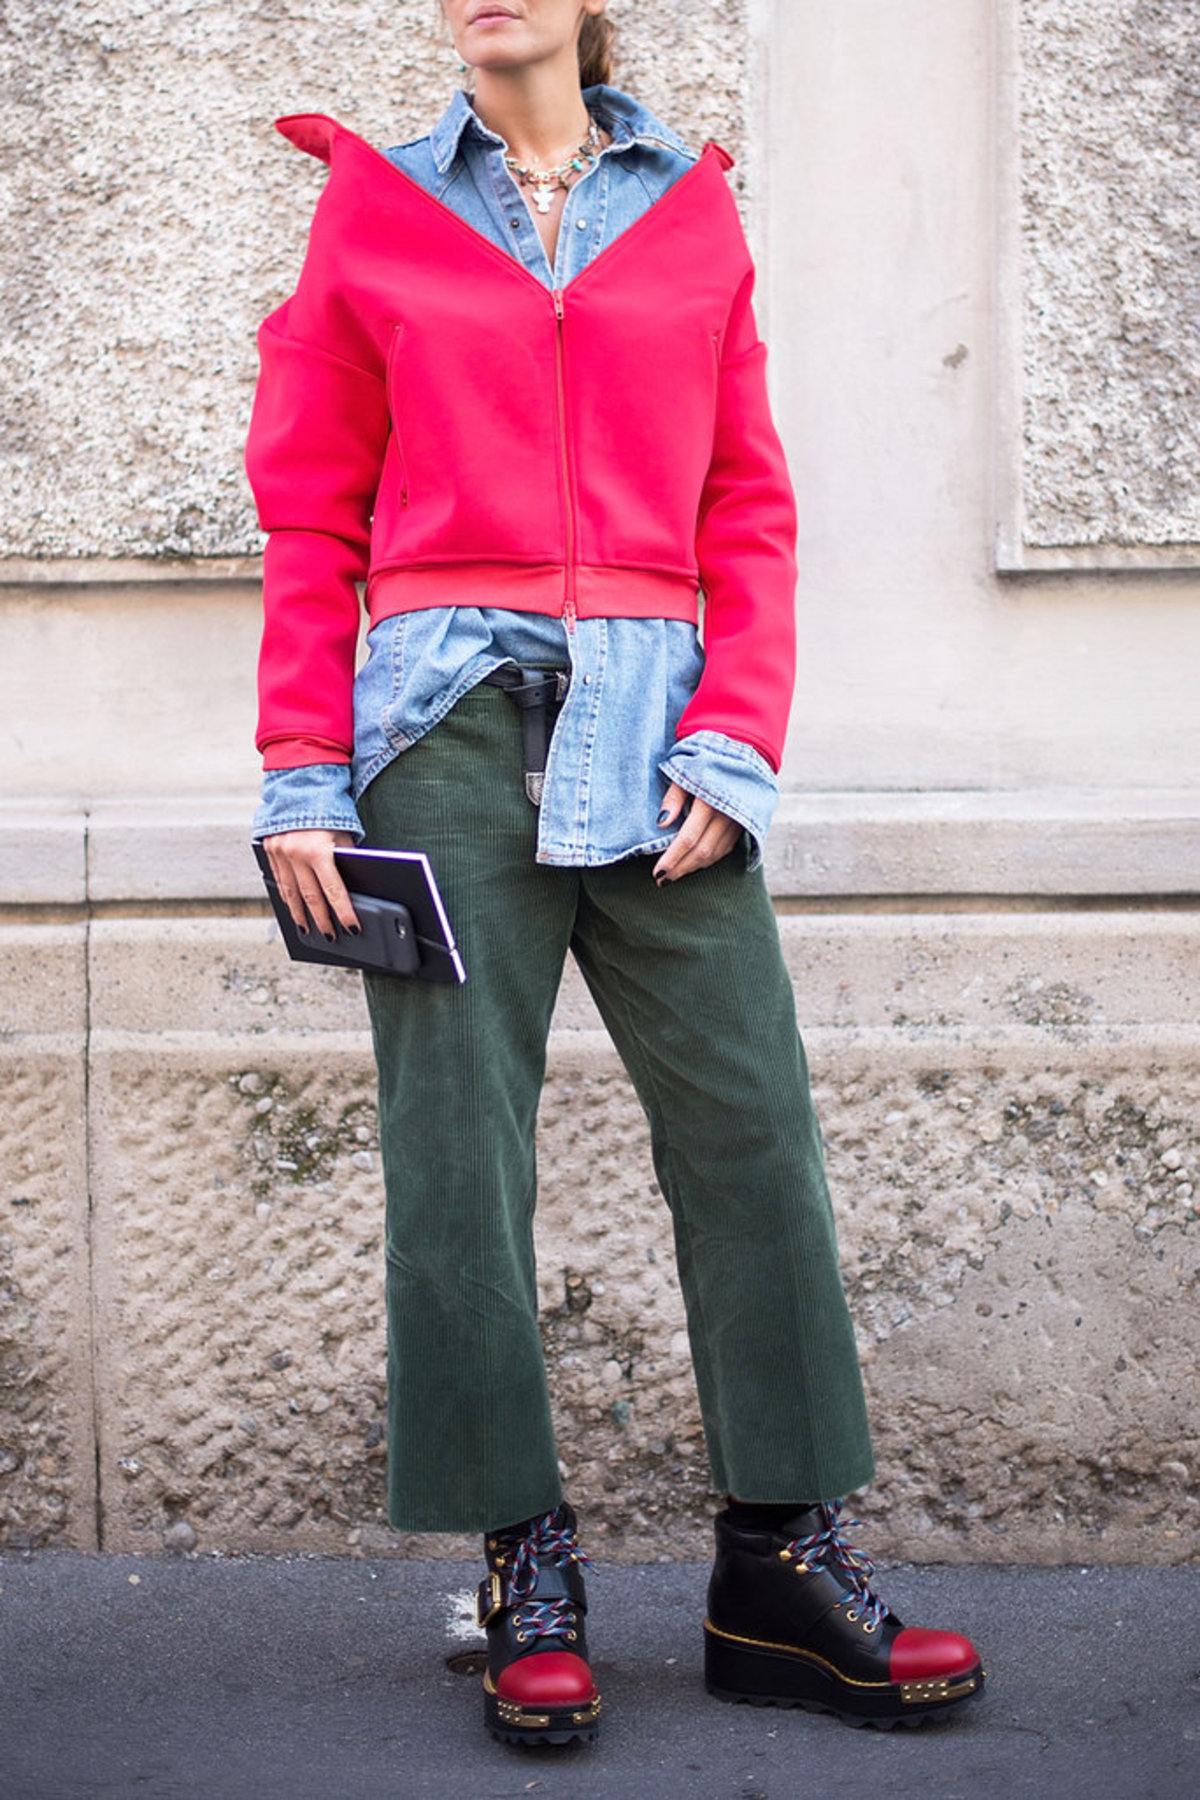 120816-red-green-street-style-6